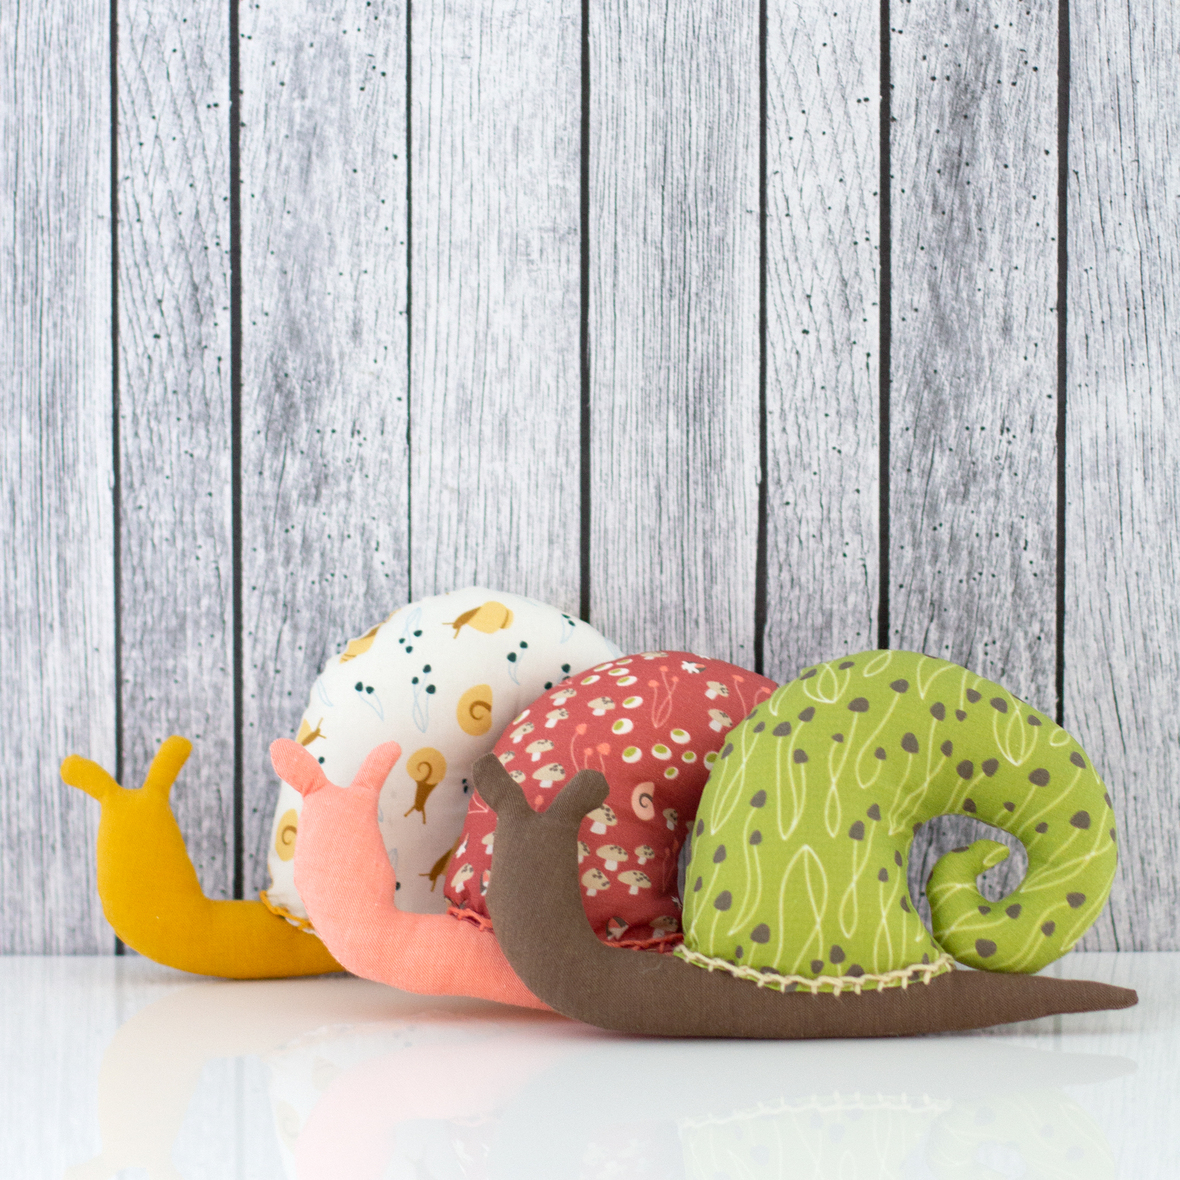 Cloud 9 - snails- pattern by DIY tutorials collection